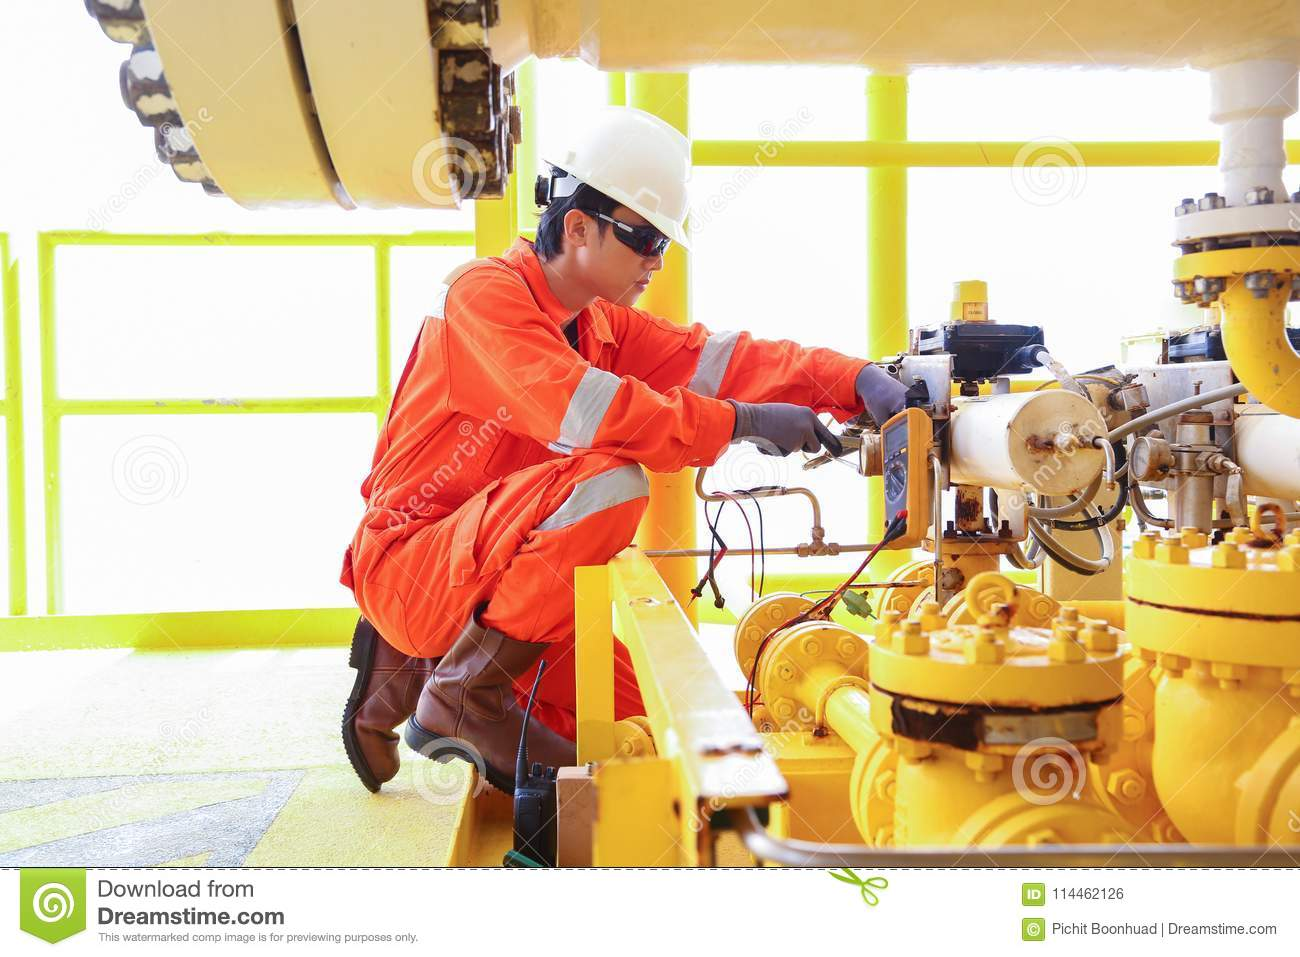 Electrical and instrument worker inspect and checking voltage and current of electric and control system.